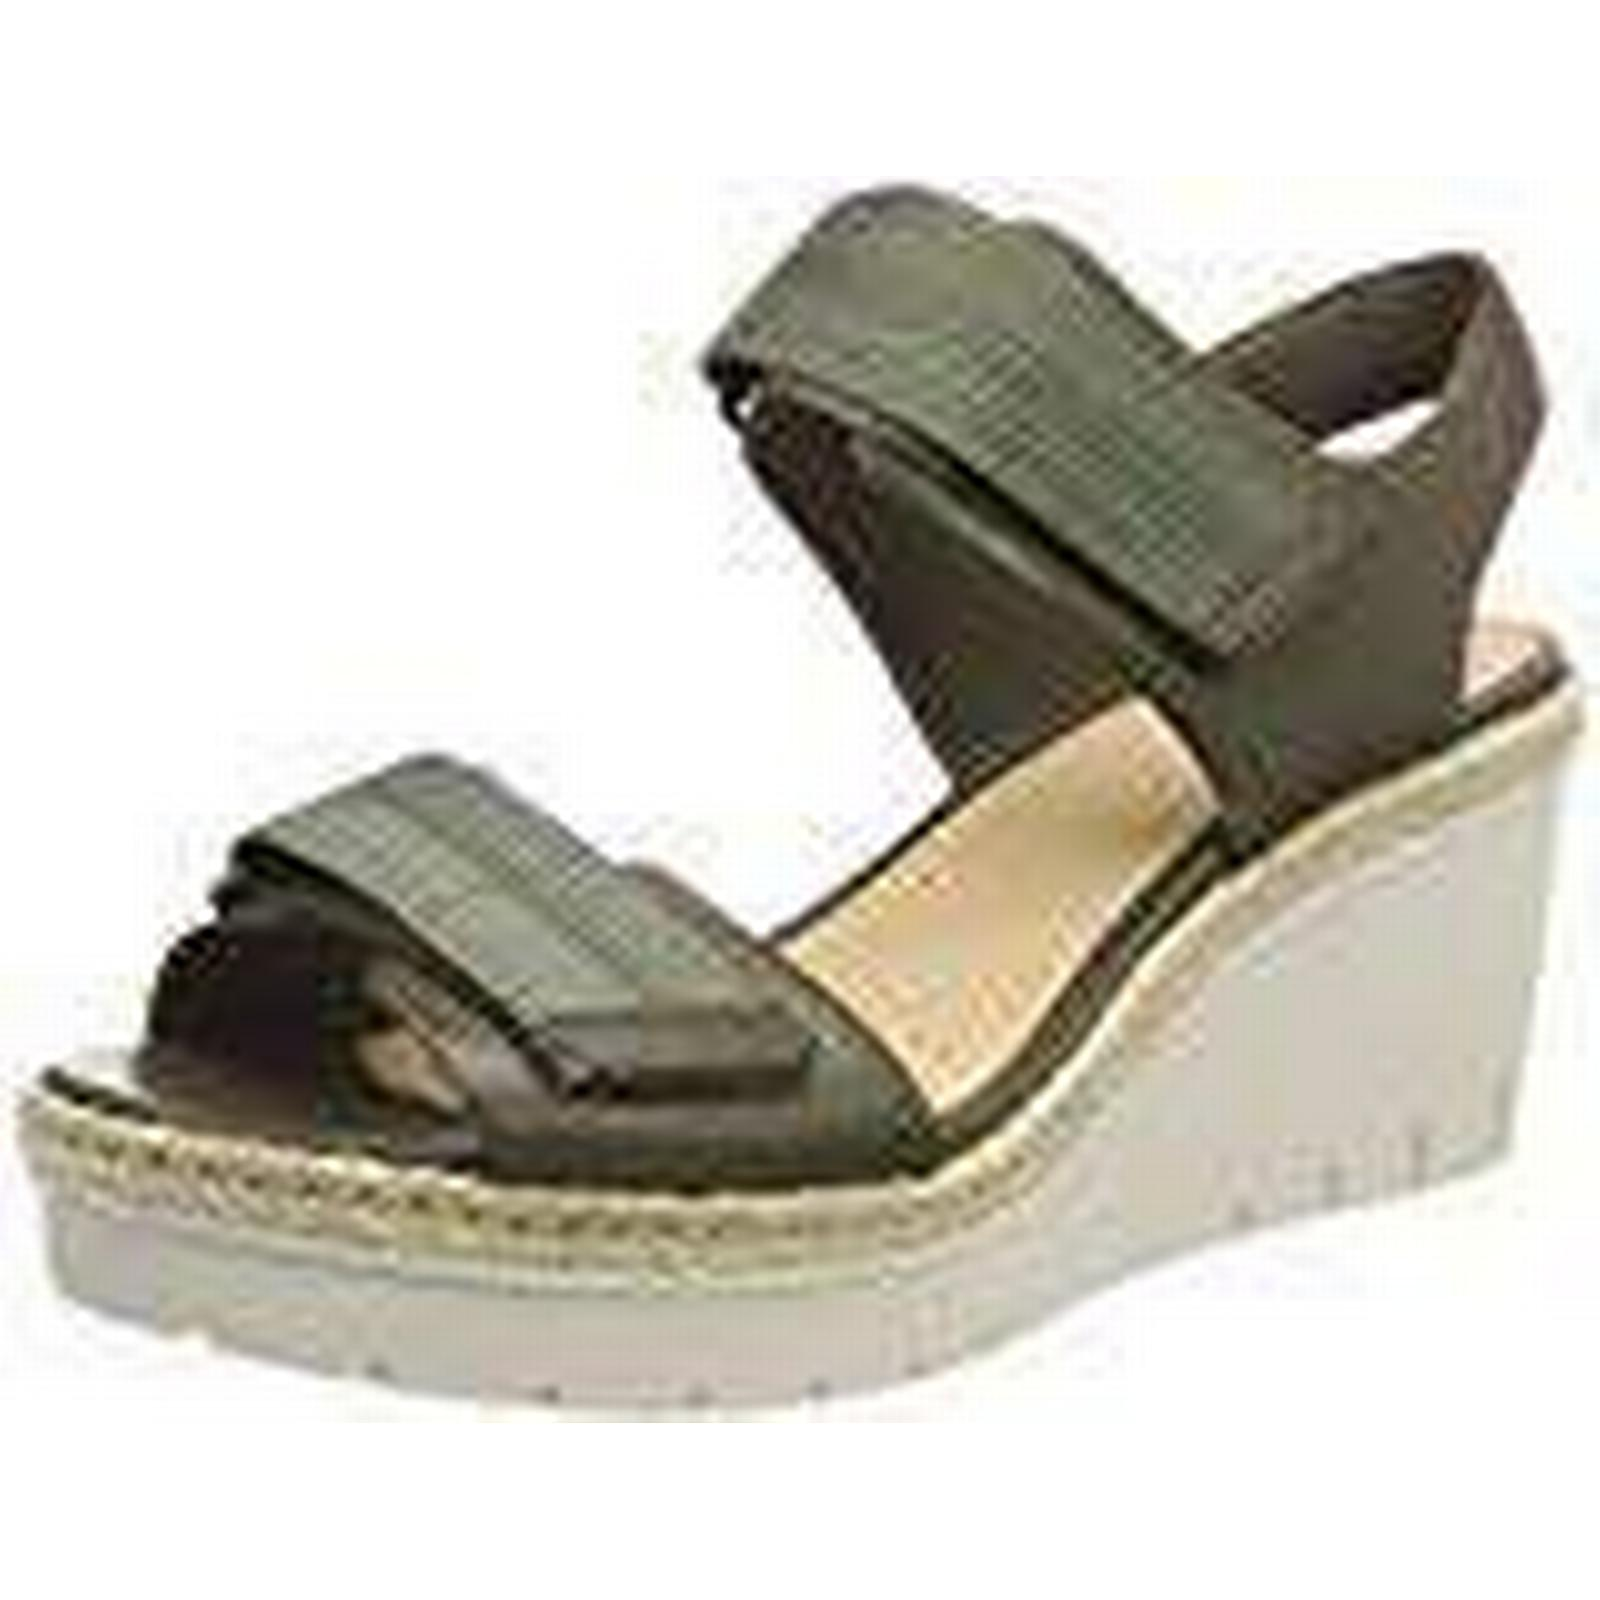 Clarks Leather), Women's Palm Shine Ankle Strap Sandals, Green (Khaki Leather), Clarks 6 UK 6 UK b81a85